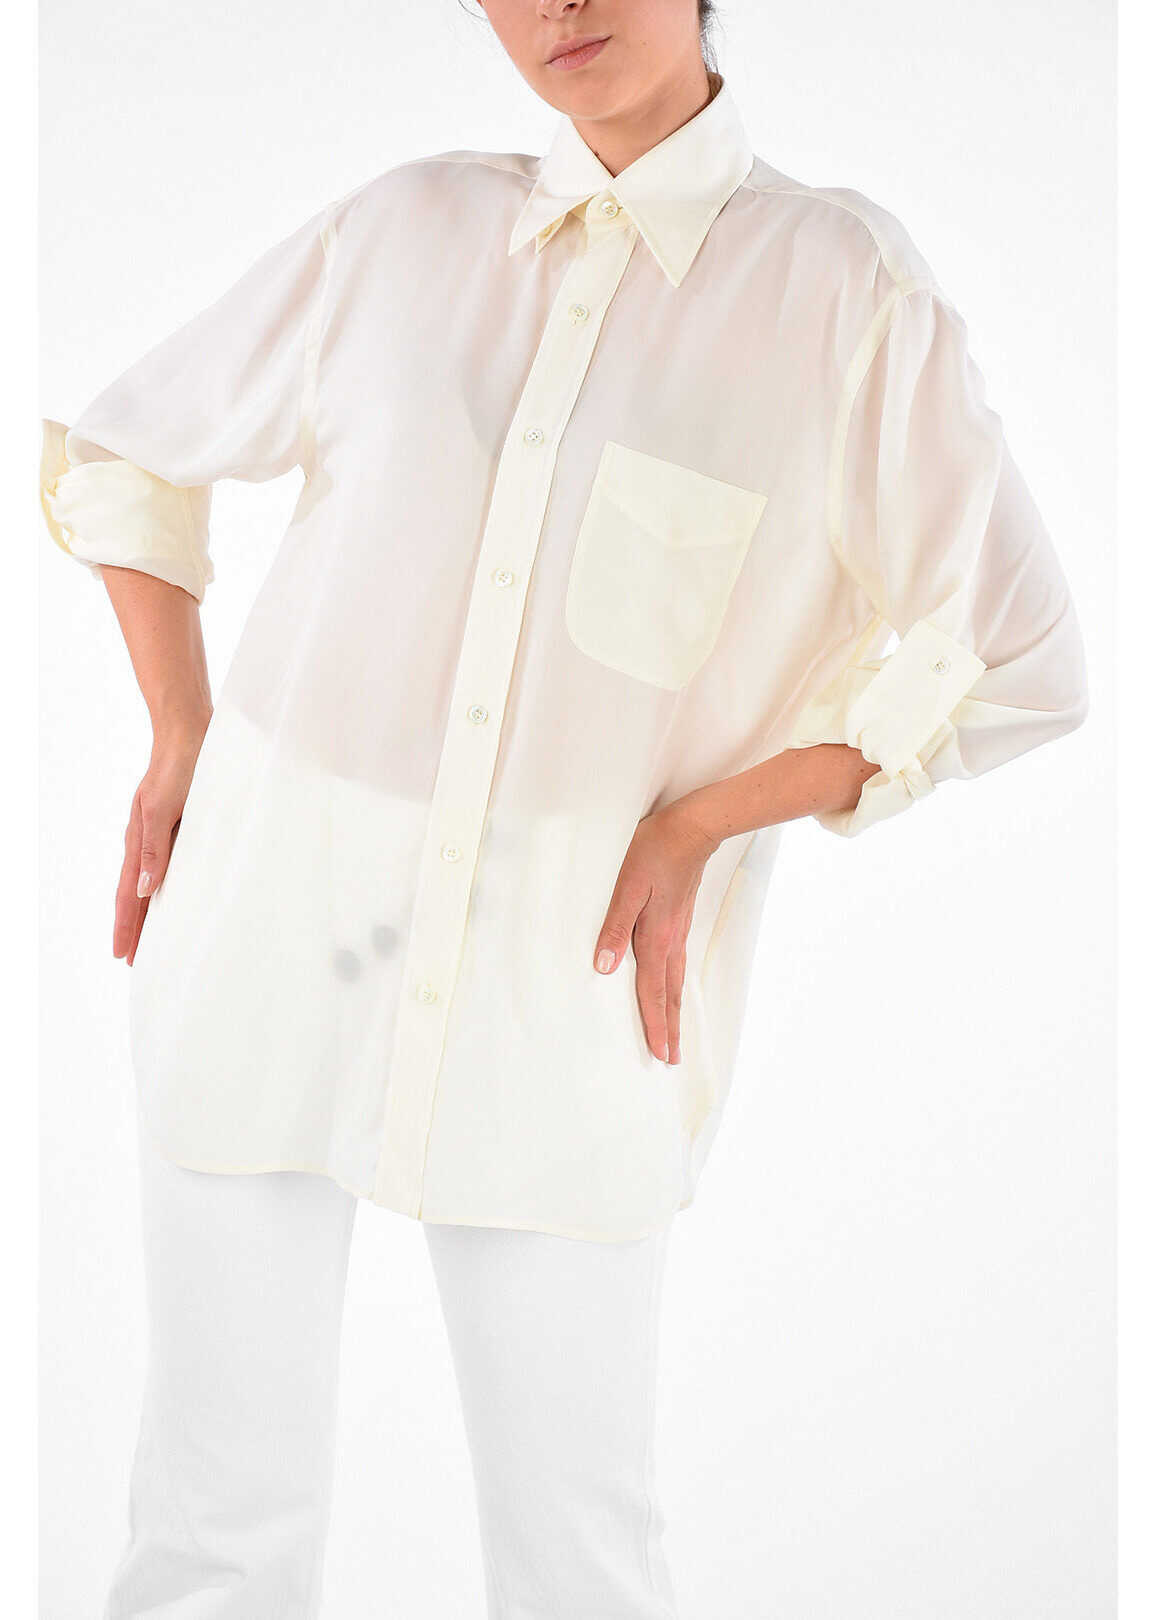 Tom Ford Blouse With Breast Pocket WHITE